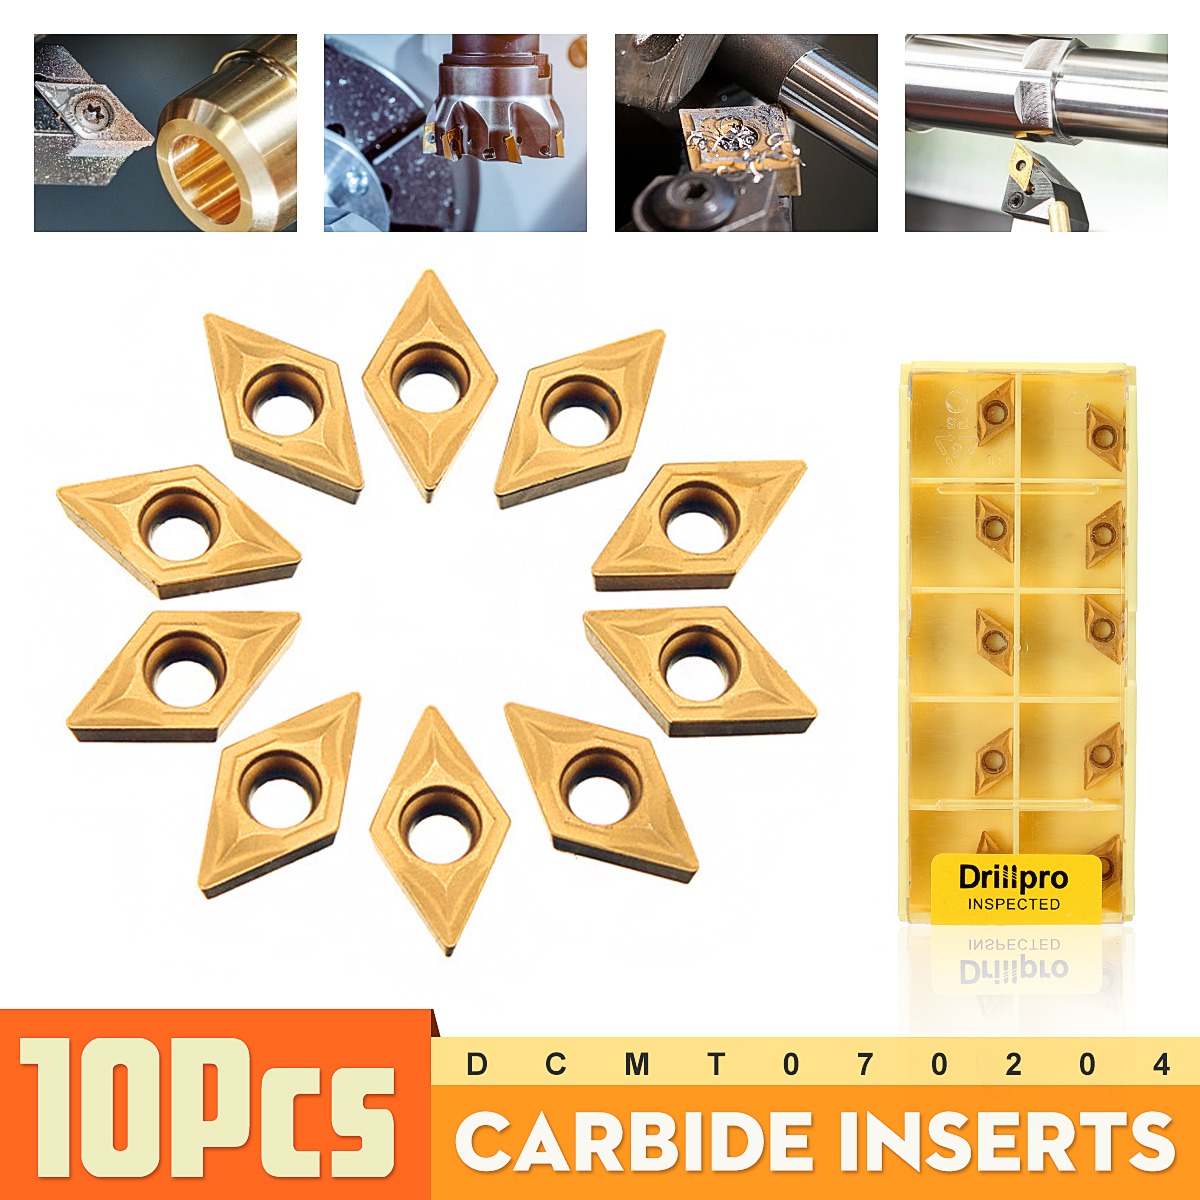 10PCS/Box DCMT070204 YBC251 Carbide Inserts For Lathe Turning Tool Boring Bar Brand New